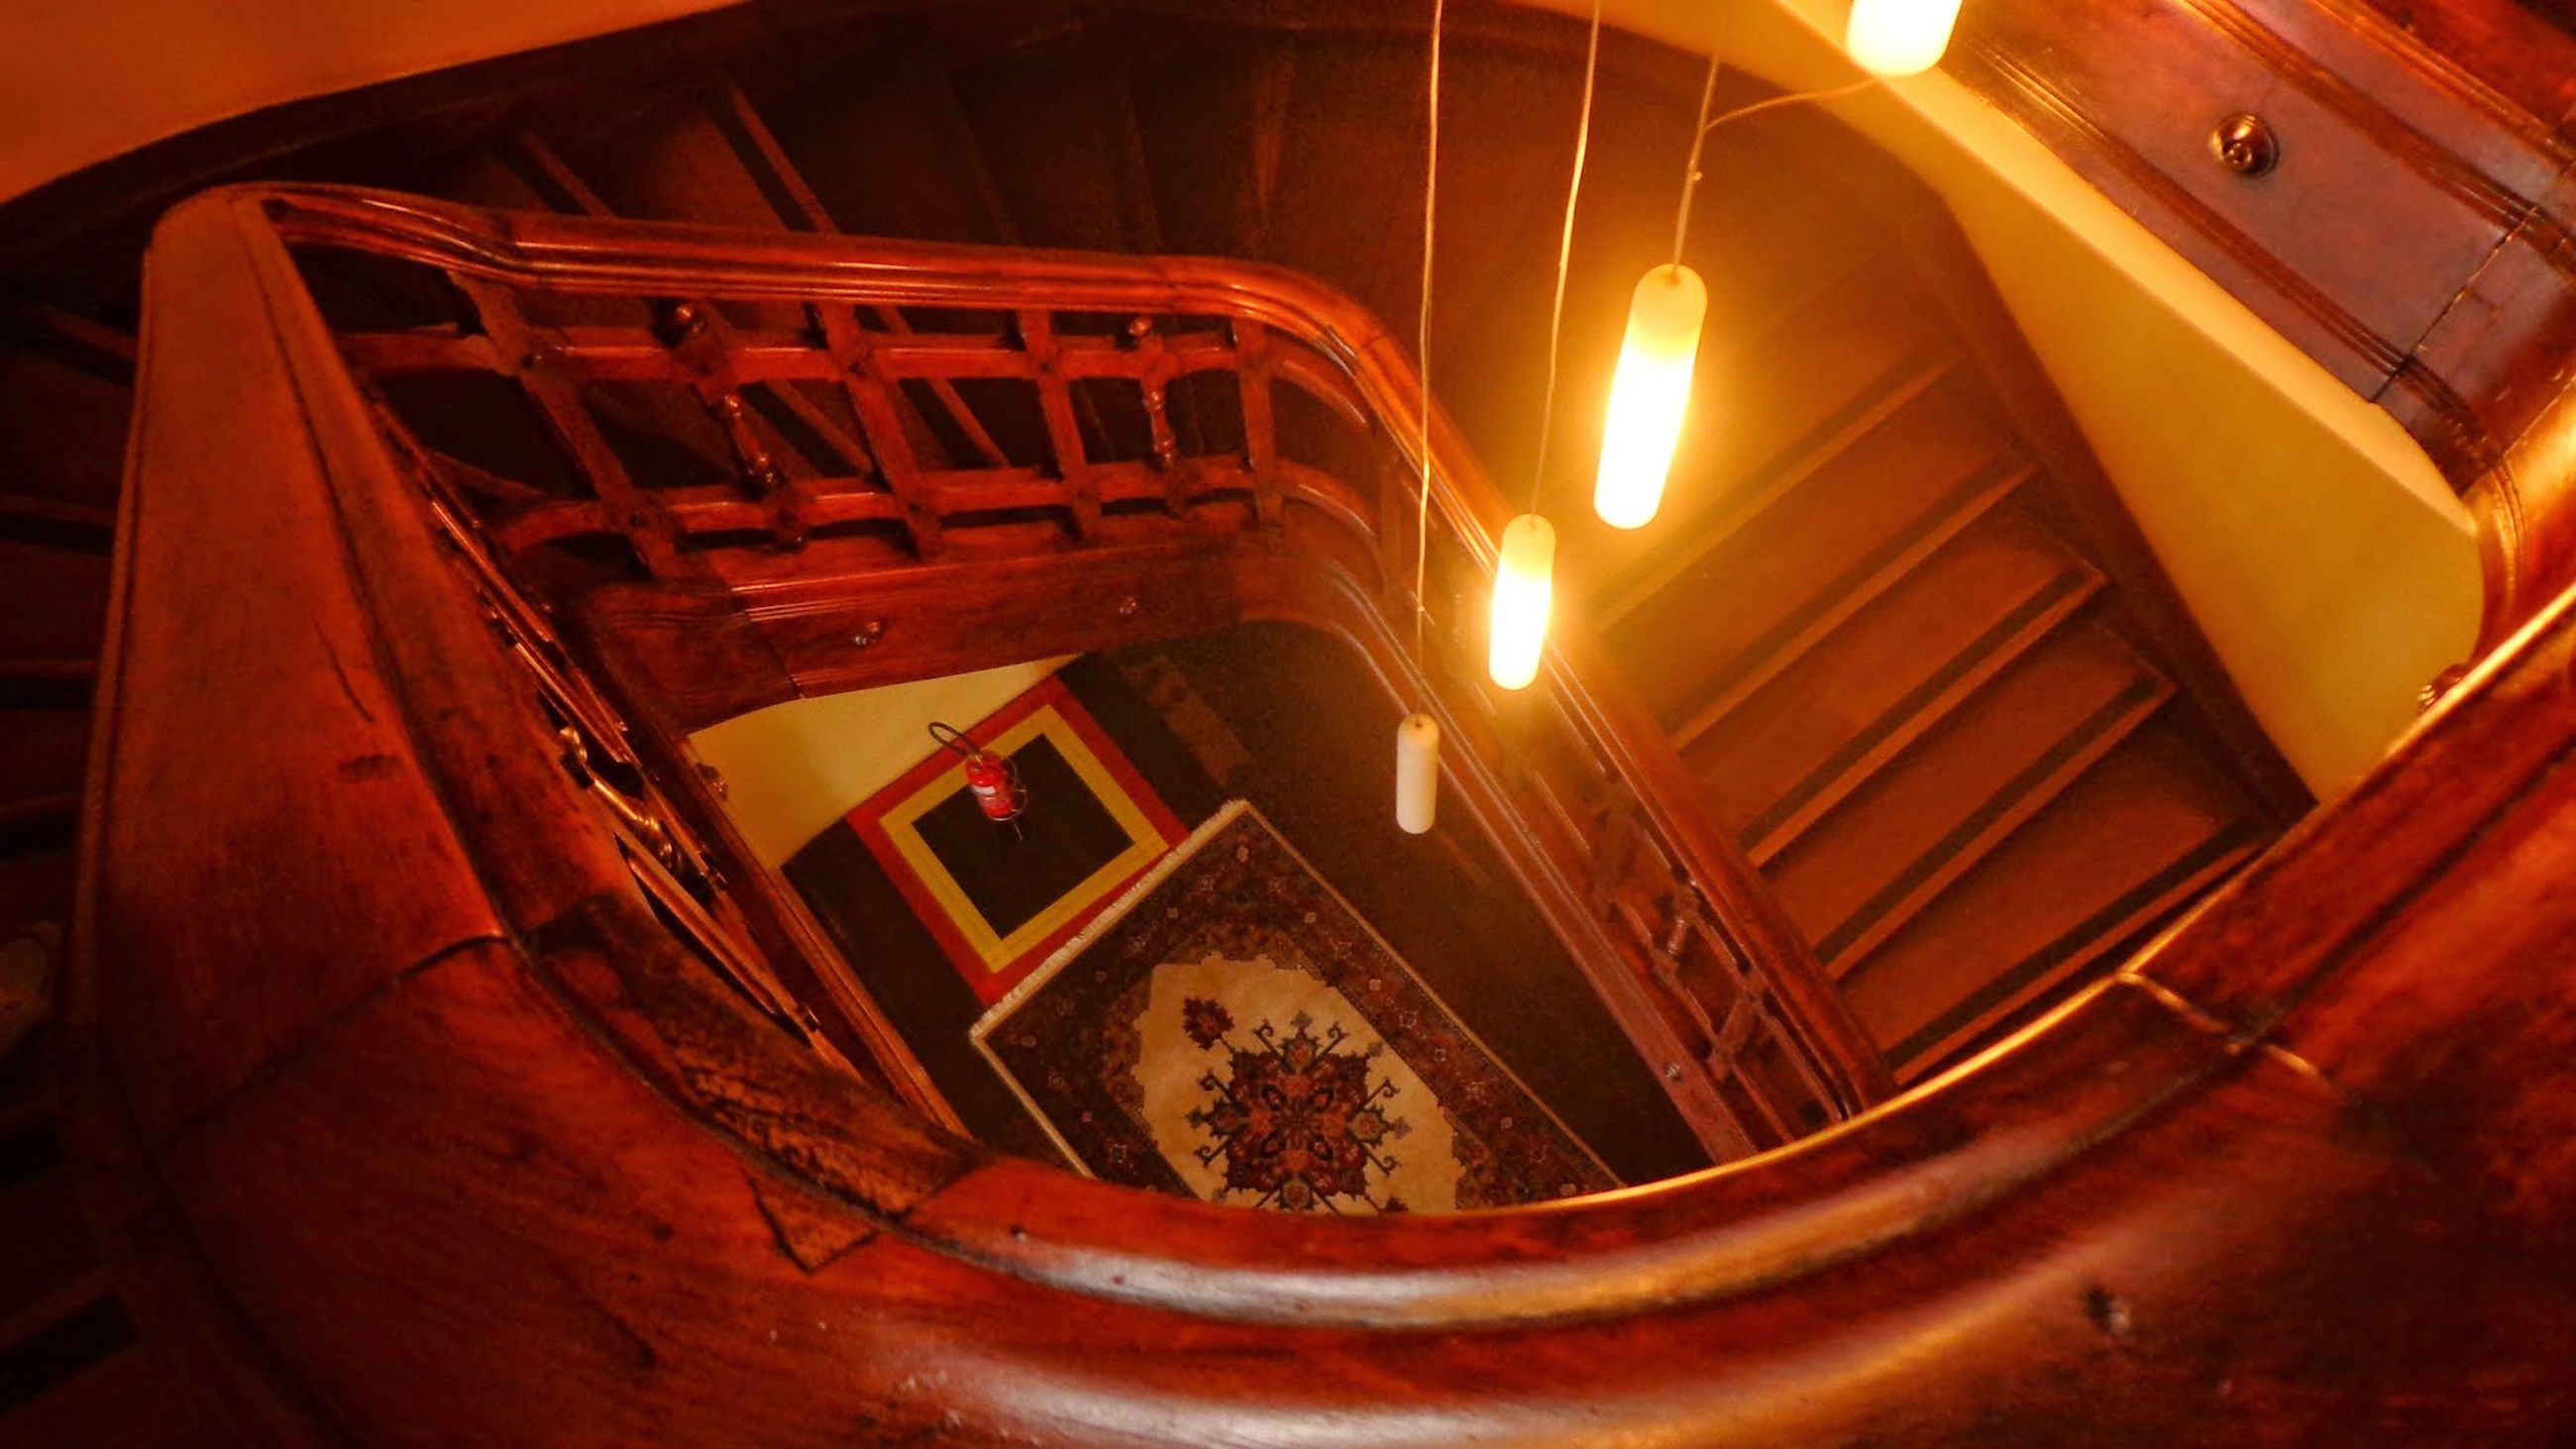 indoors, illuminated, transportation, architecture, built structure, low angle view, metal, no people, mode of transport, orange color, interior, lighting equipment, steps, railing, staircase, ceiling, steps and staircases, old, close-up, tunnel